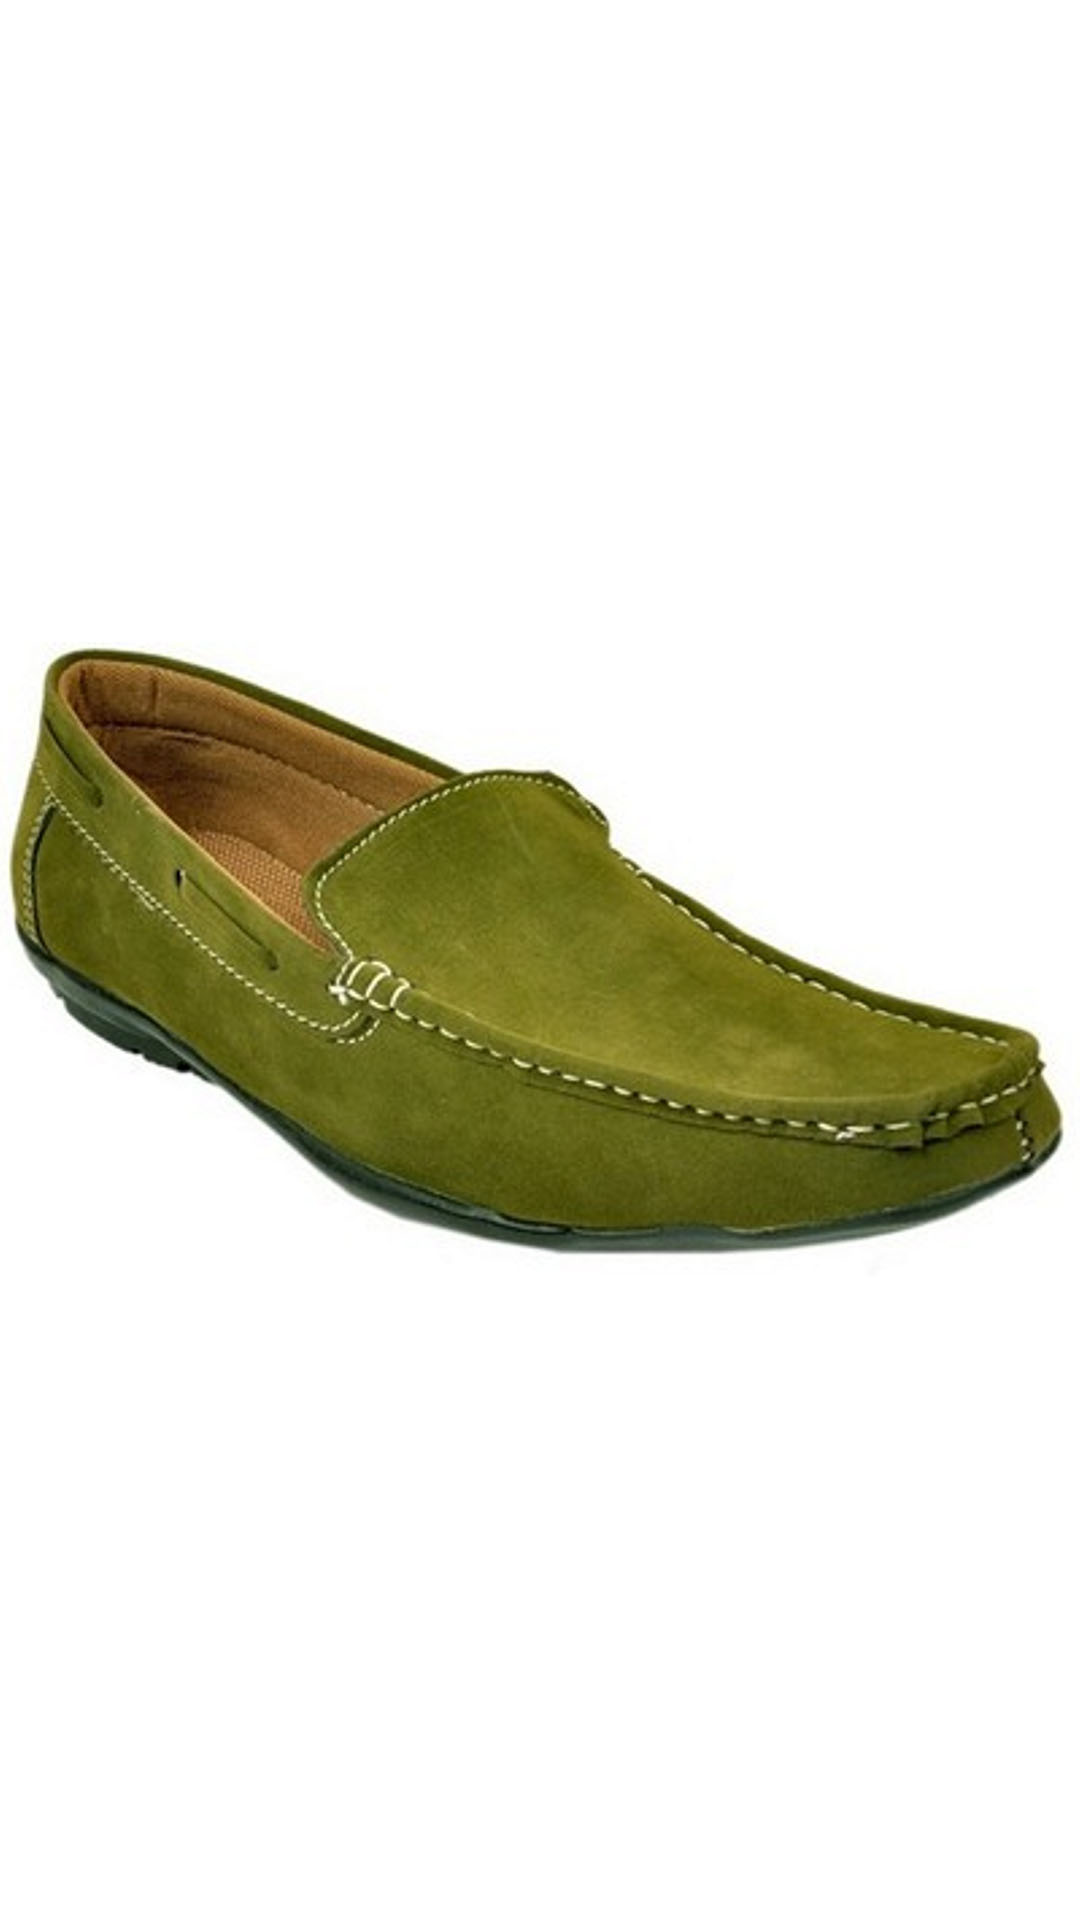 A Star Green Synthetic Leather Loafers